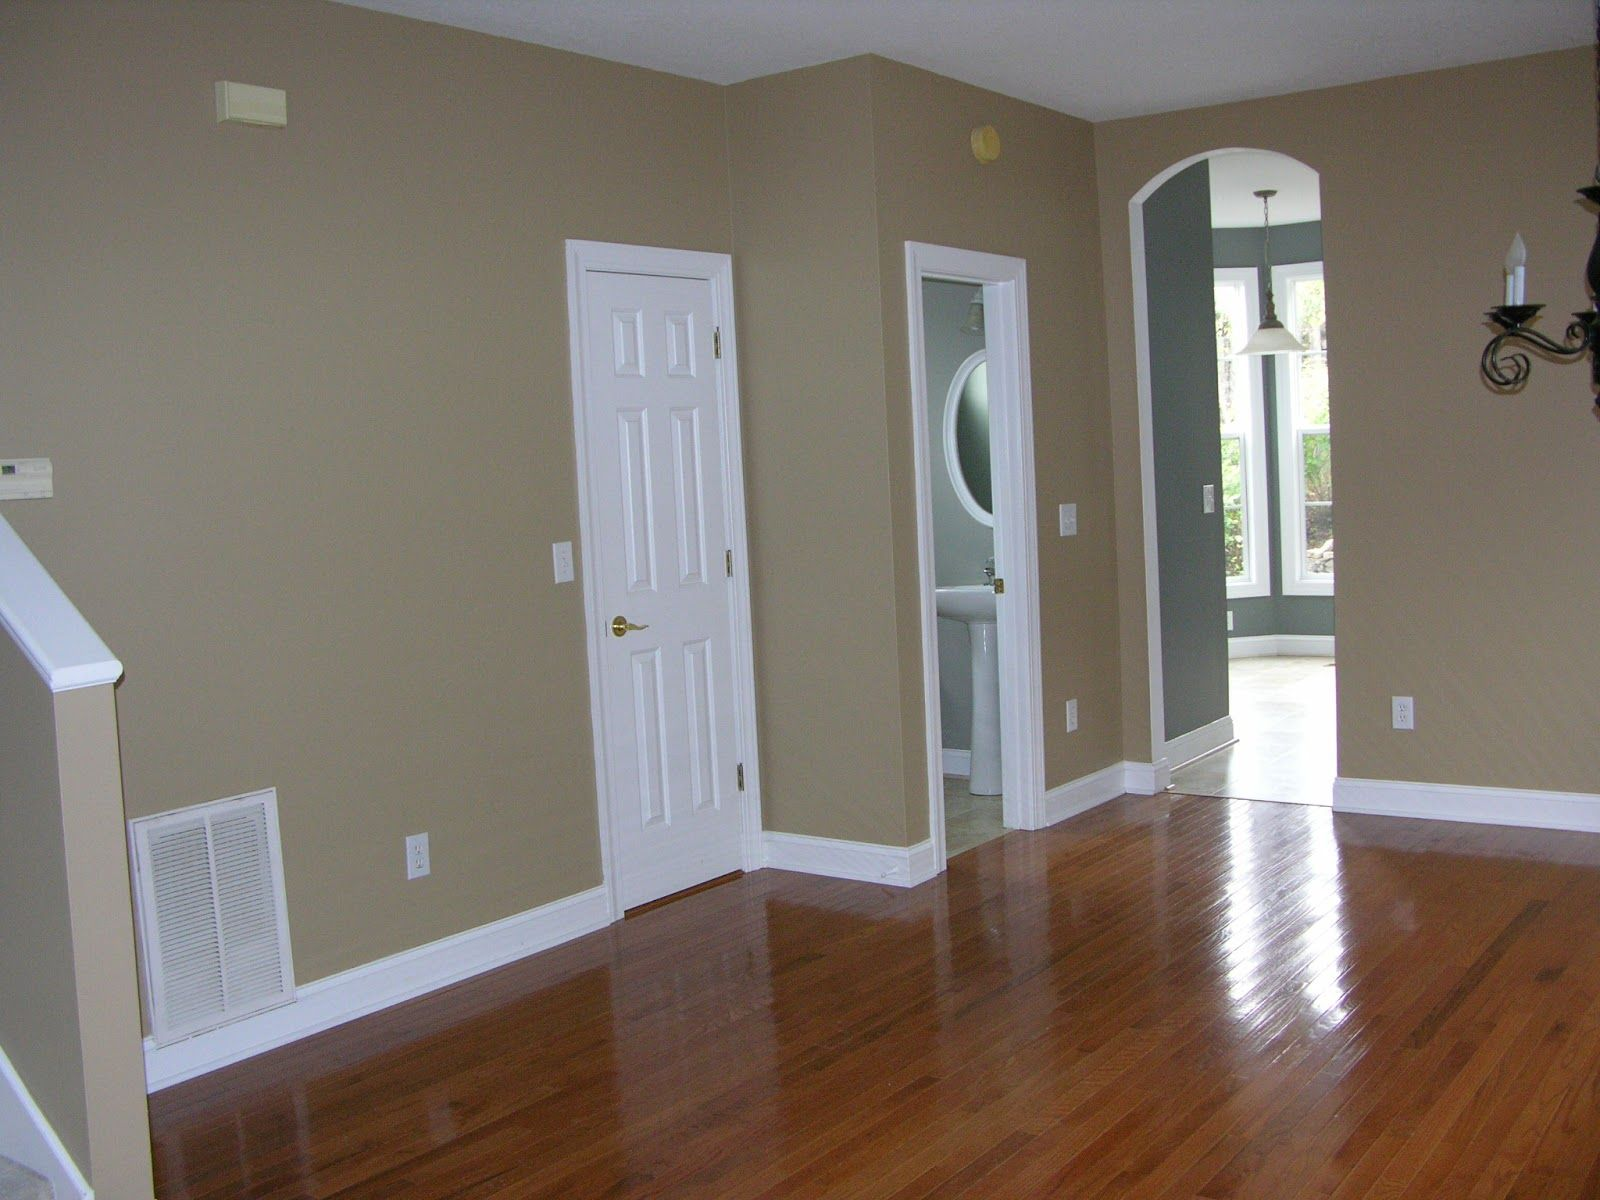 Nice Paint Colors choosing interior paint colors |  sterling property services